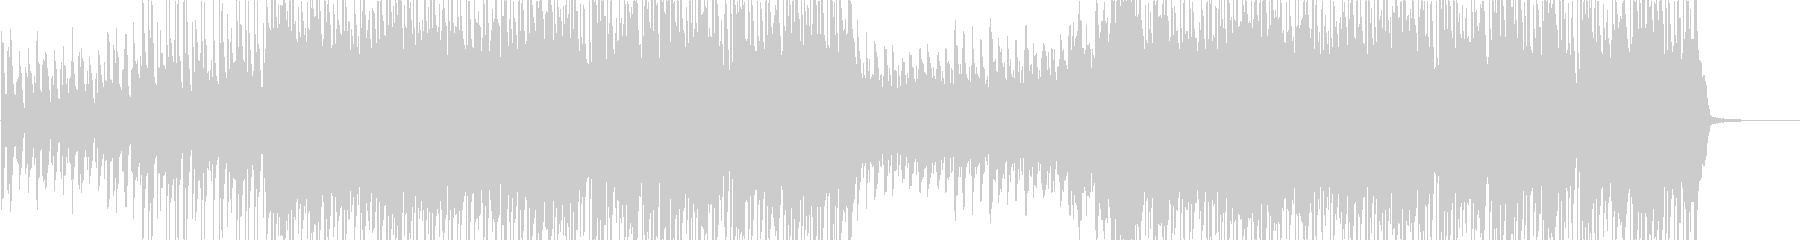 Rhythmic and cute happy heartwarming song's unreproduced waveform